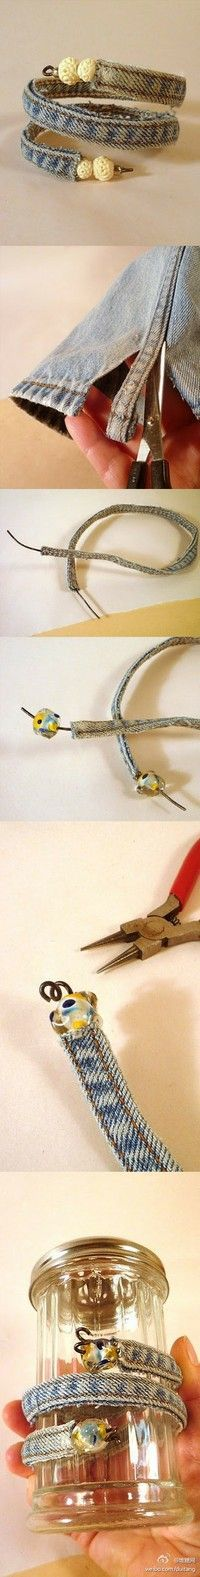 Figuo! To try! #craft #diy #reuse #upcycle #recycle #jeans #jewelry #bracelet #cute